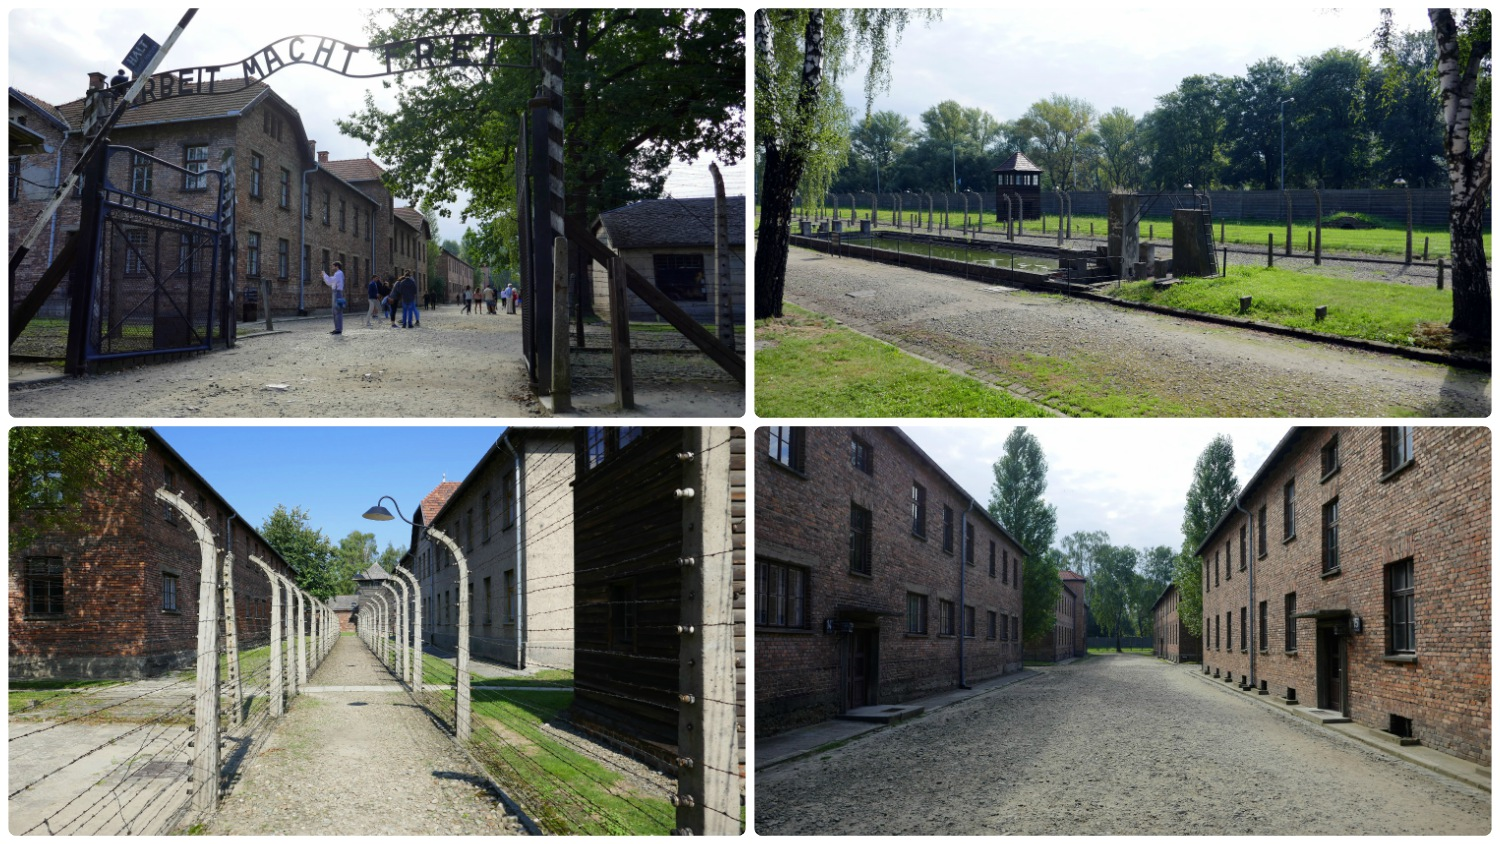 Standing in front of the entrance to Auschwitz Concentration Camp can be an emotional experience. Be prepared for the infamous entrance gate, rows of barbed wire, watchtowers, and lines of brick buildings.